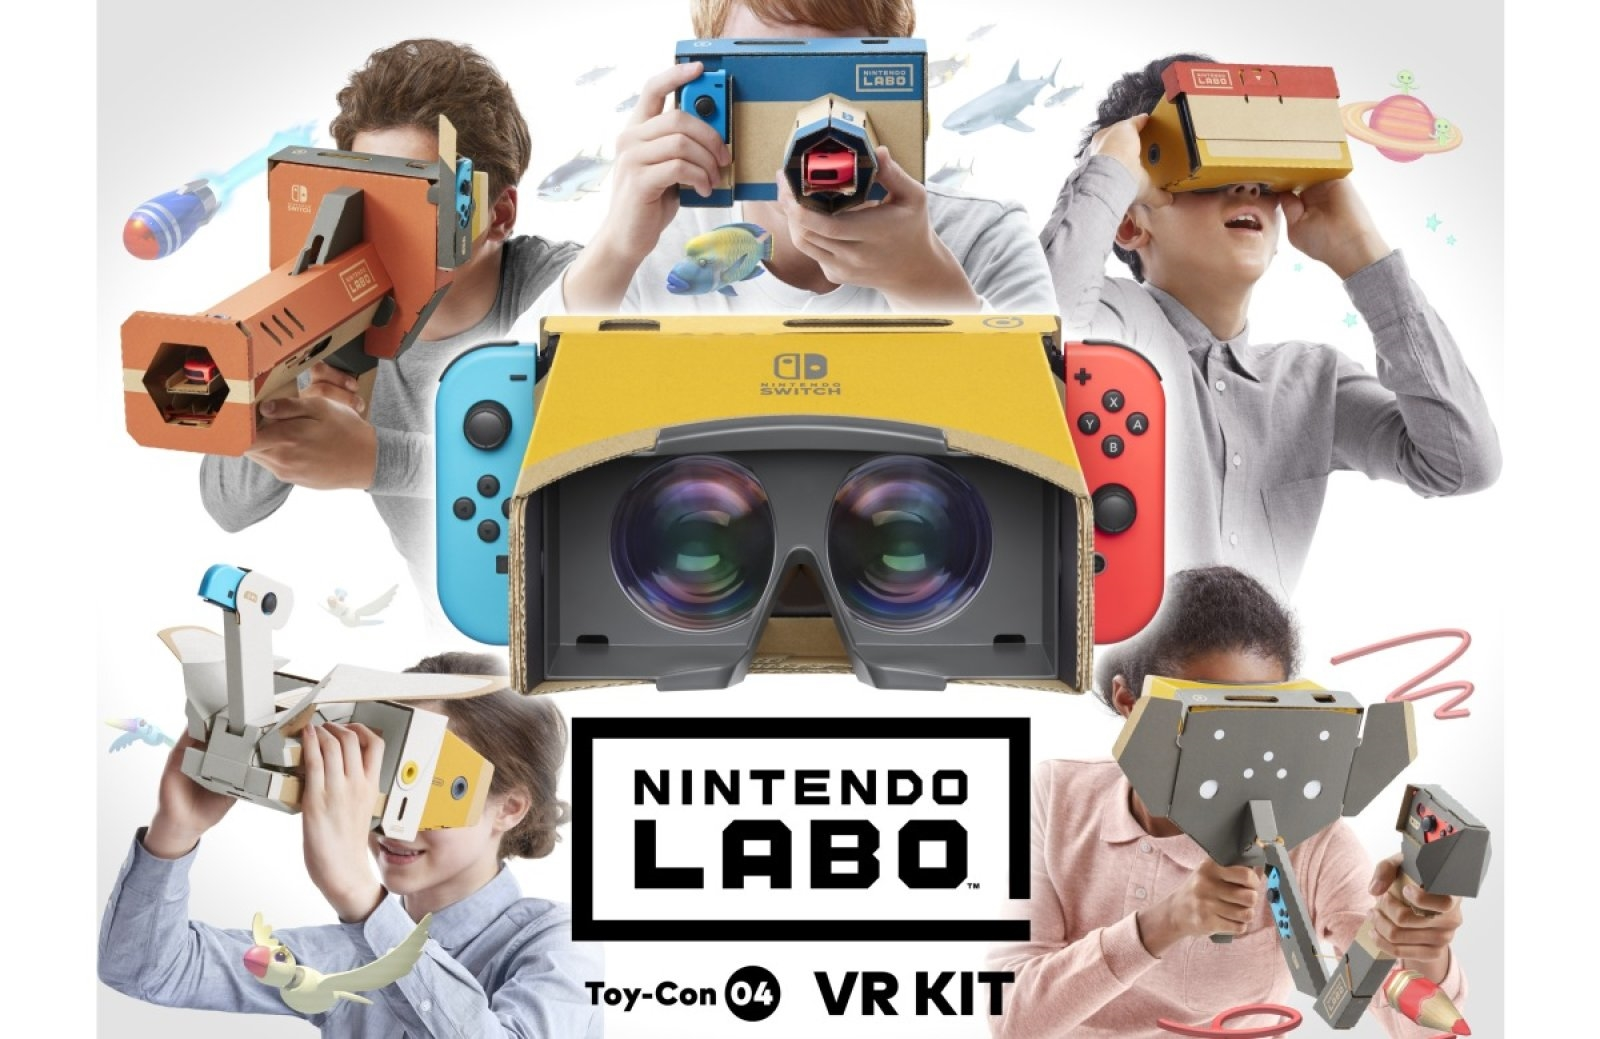 Nintendo next Labo kit is all about virtual reality | DeviceDaily.com